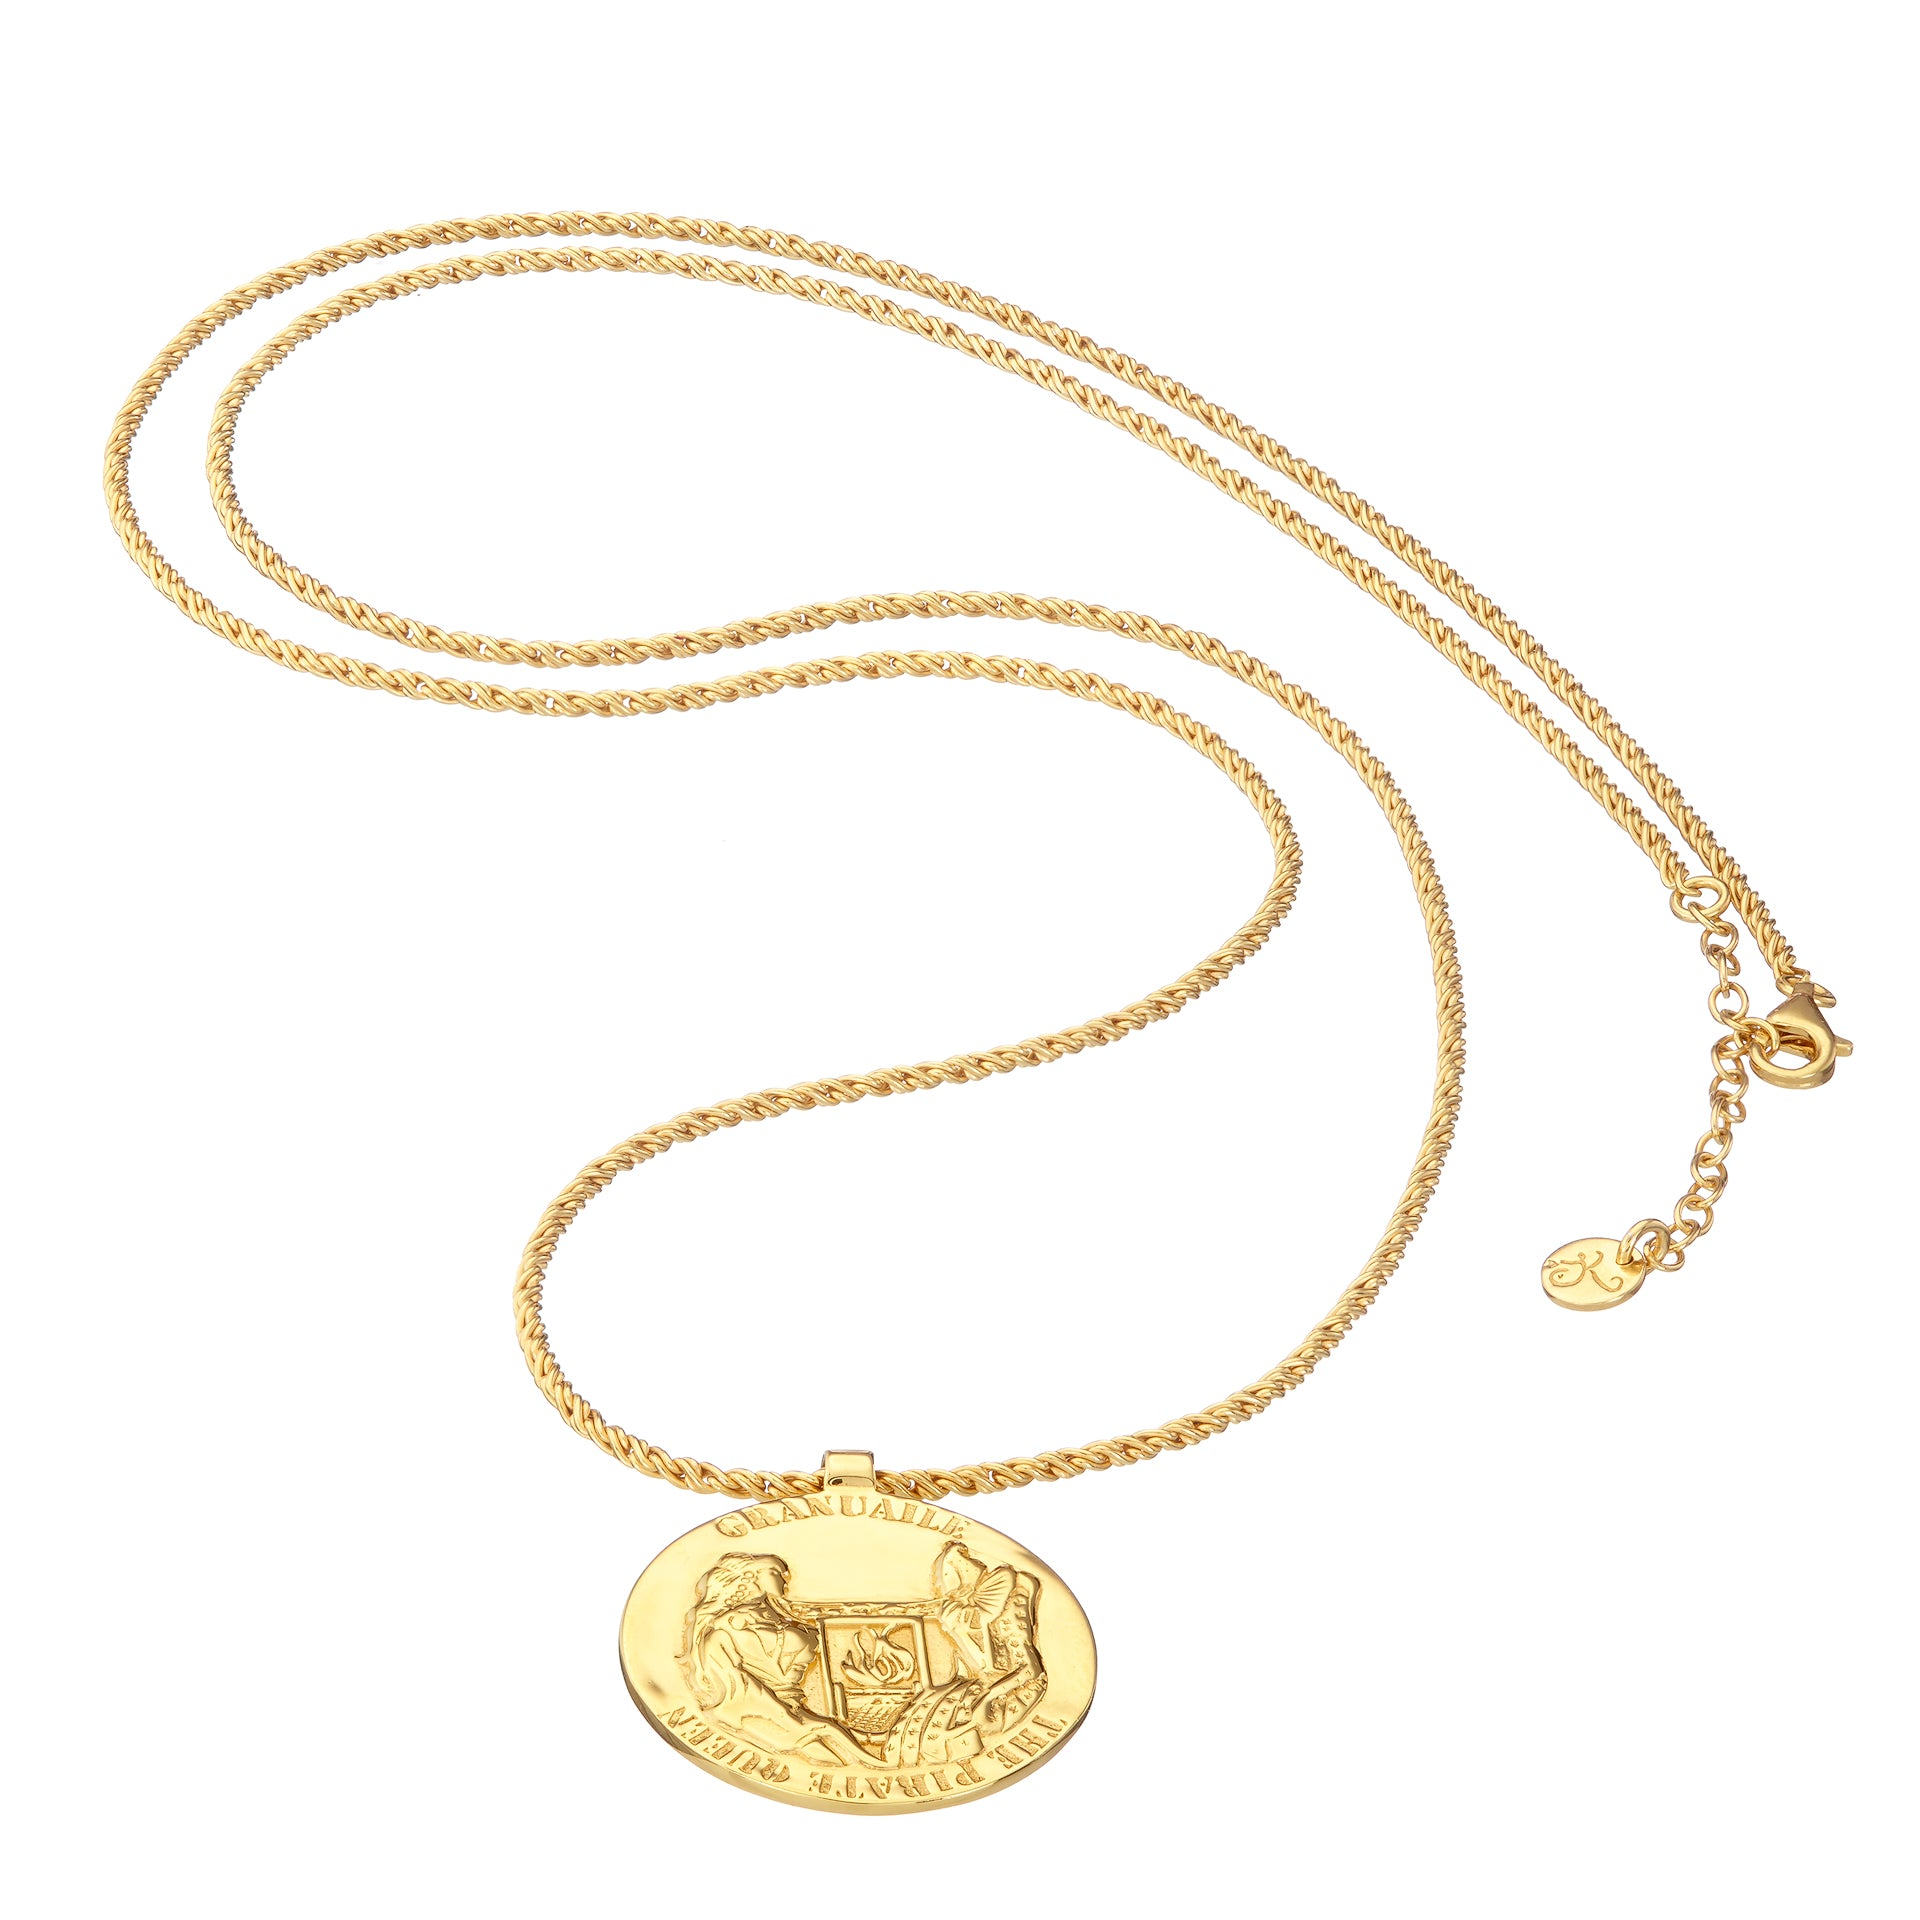 GRACE O'MALLEY Medallion Necklace